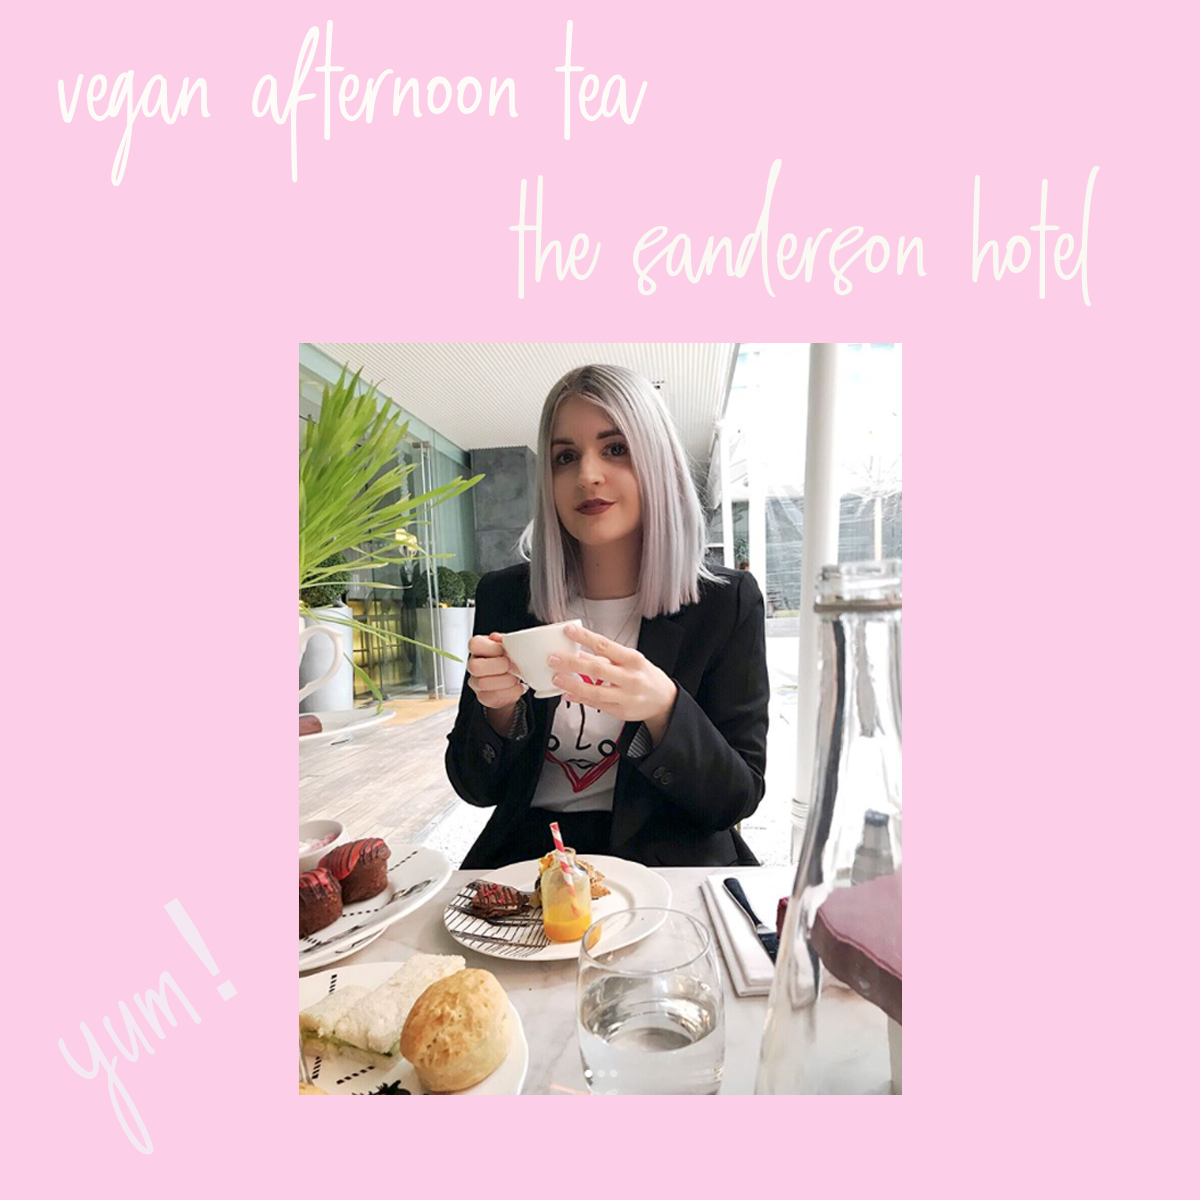 vegan afternoon tea london